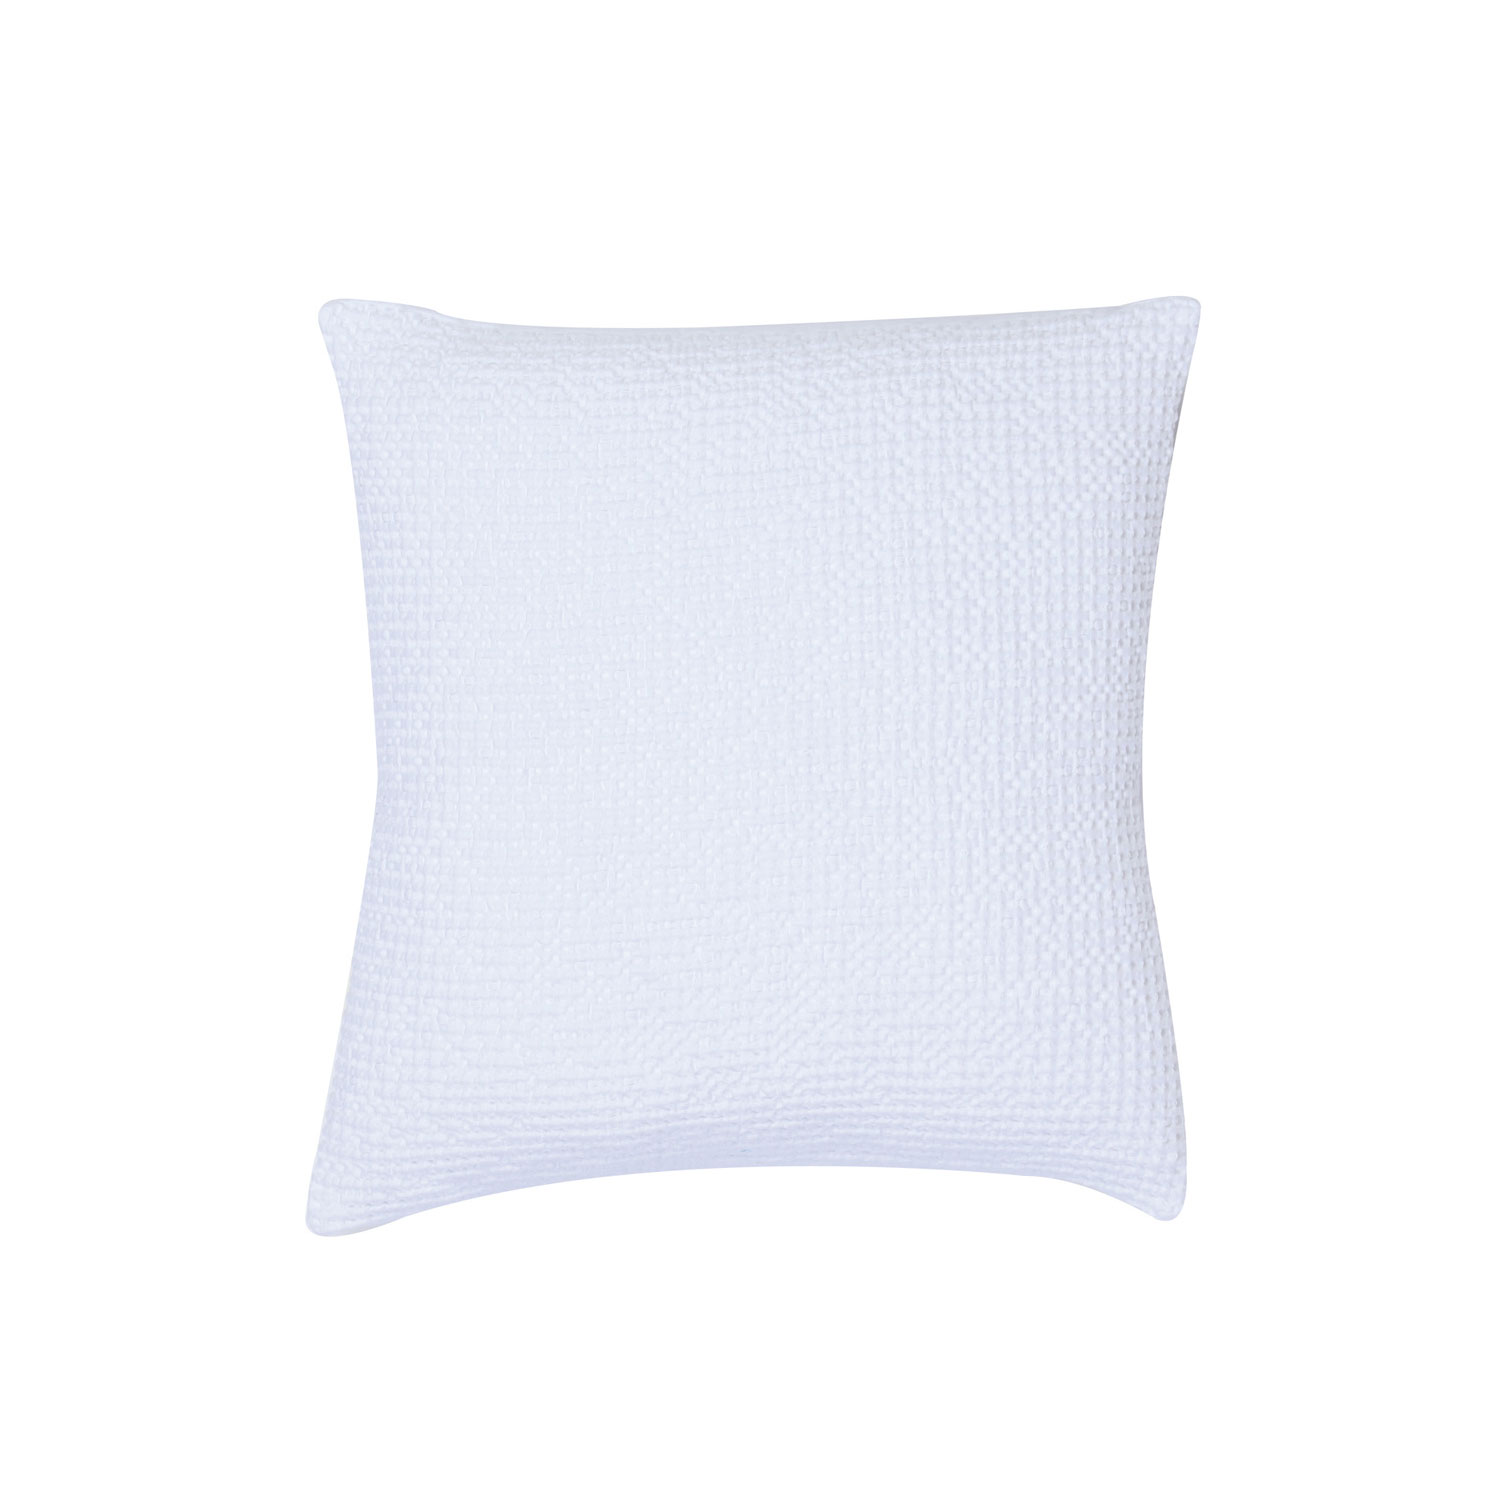 Coussin  en coton blanc 45 x 45 (photo)